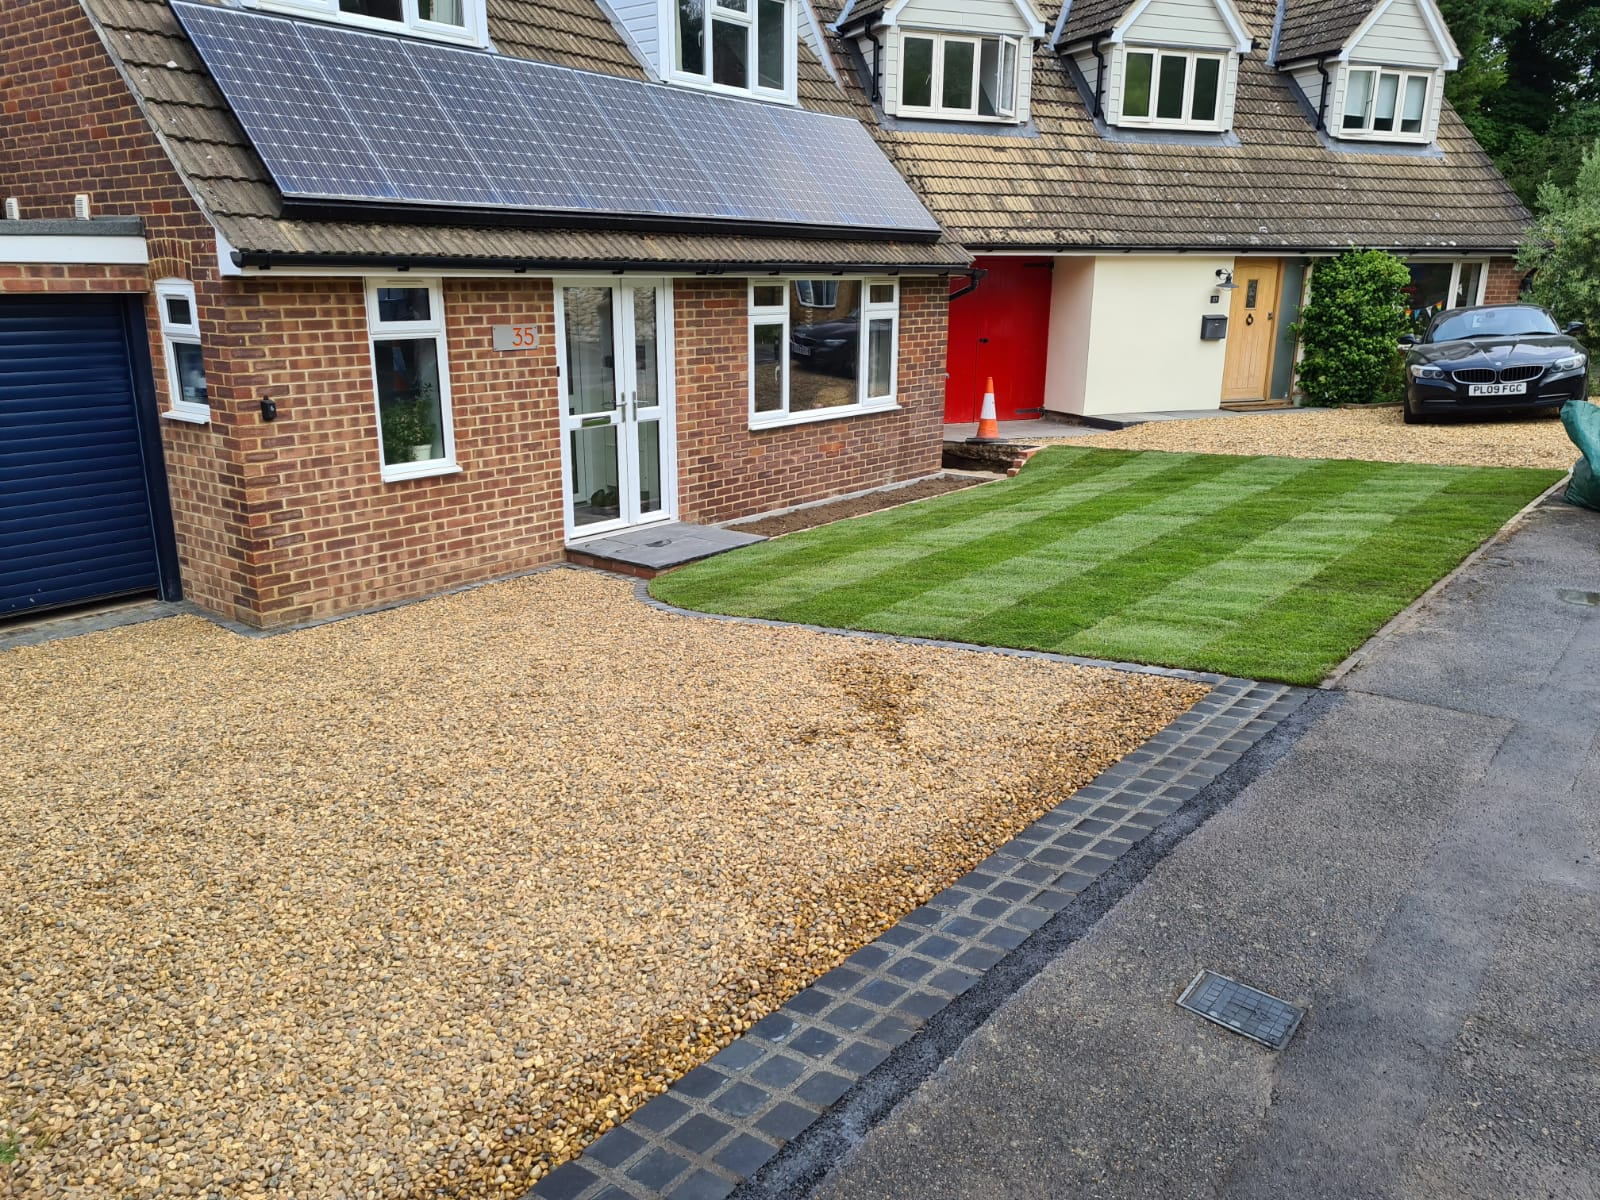 Landscaping company in Cambridge - 14